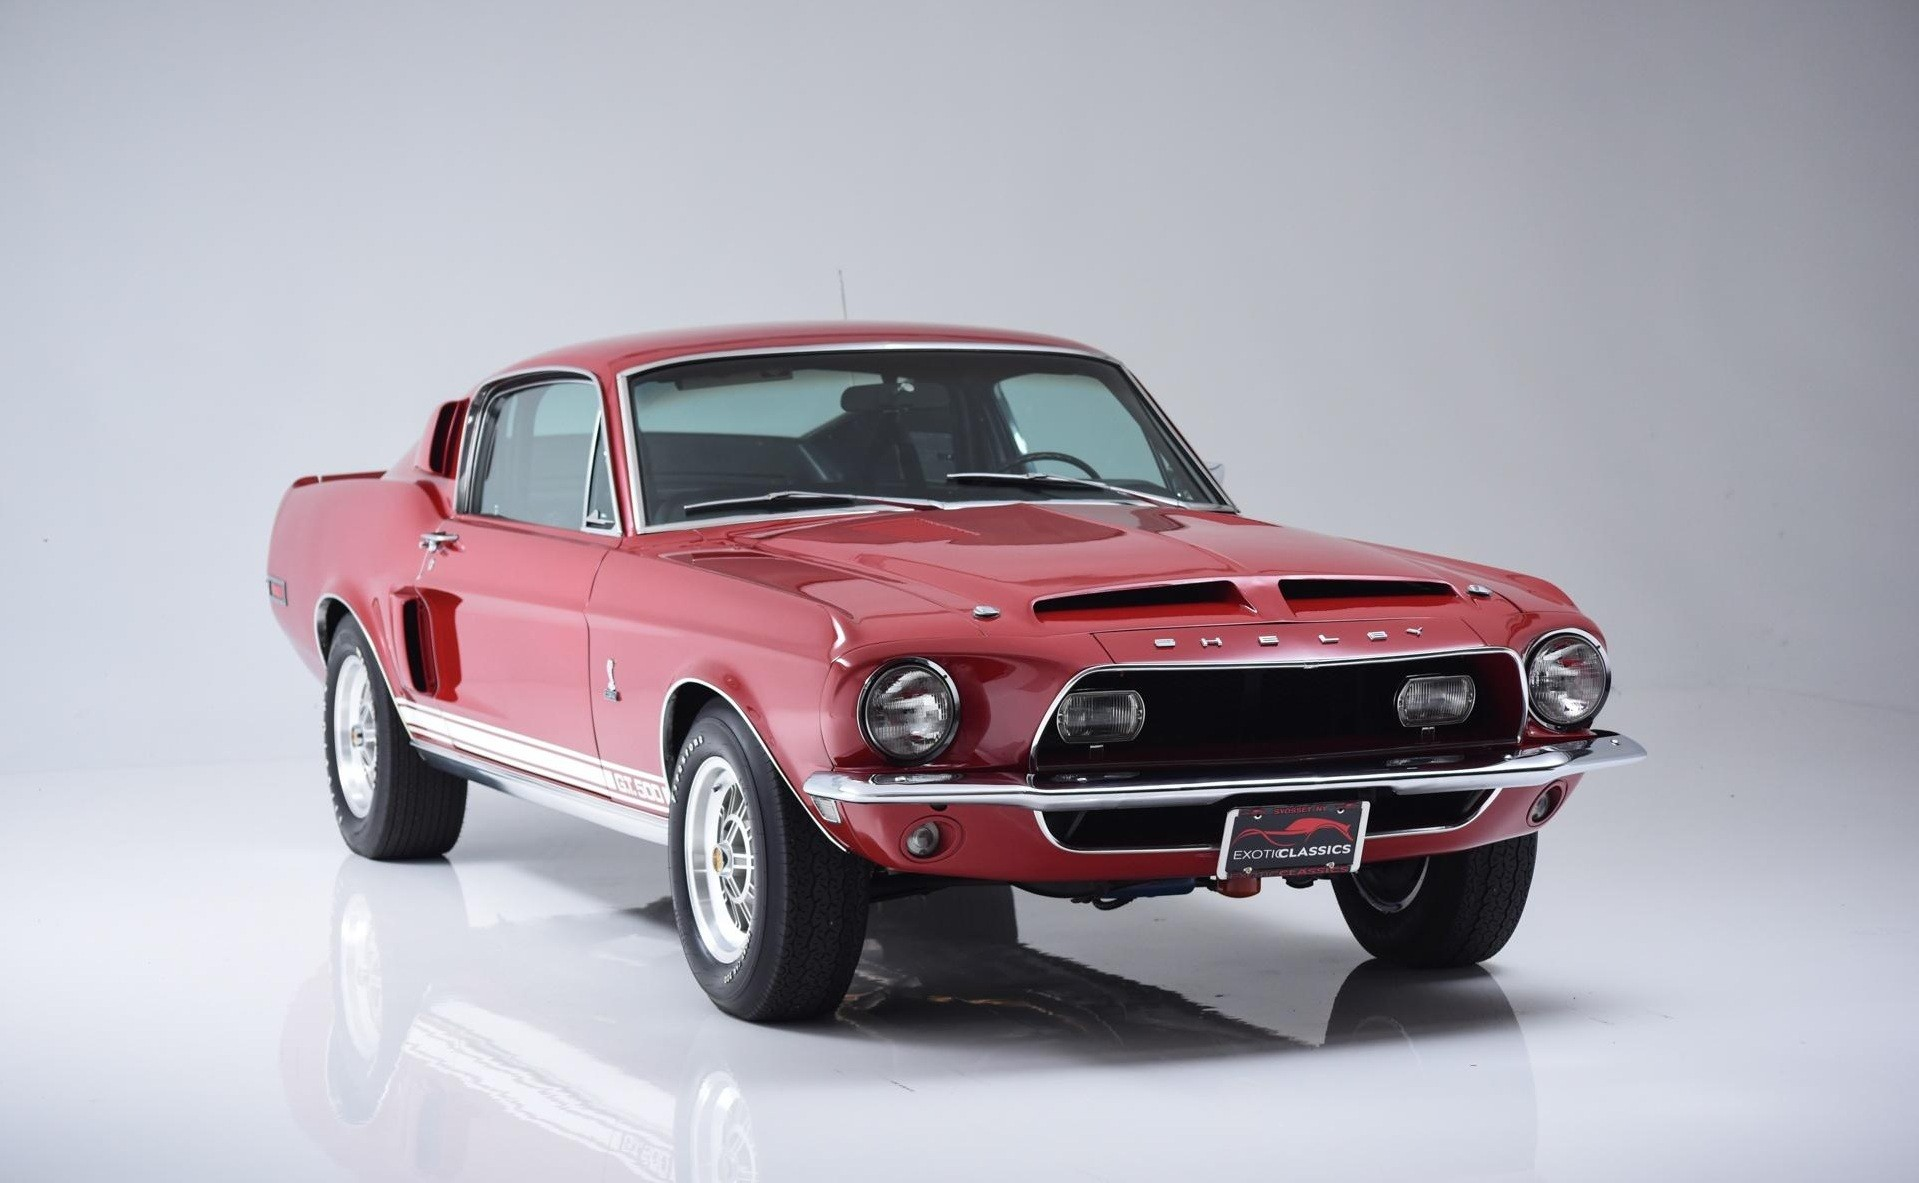 Ford Mustang Shelby GT 500 1968